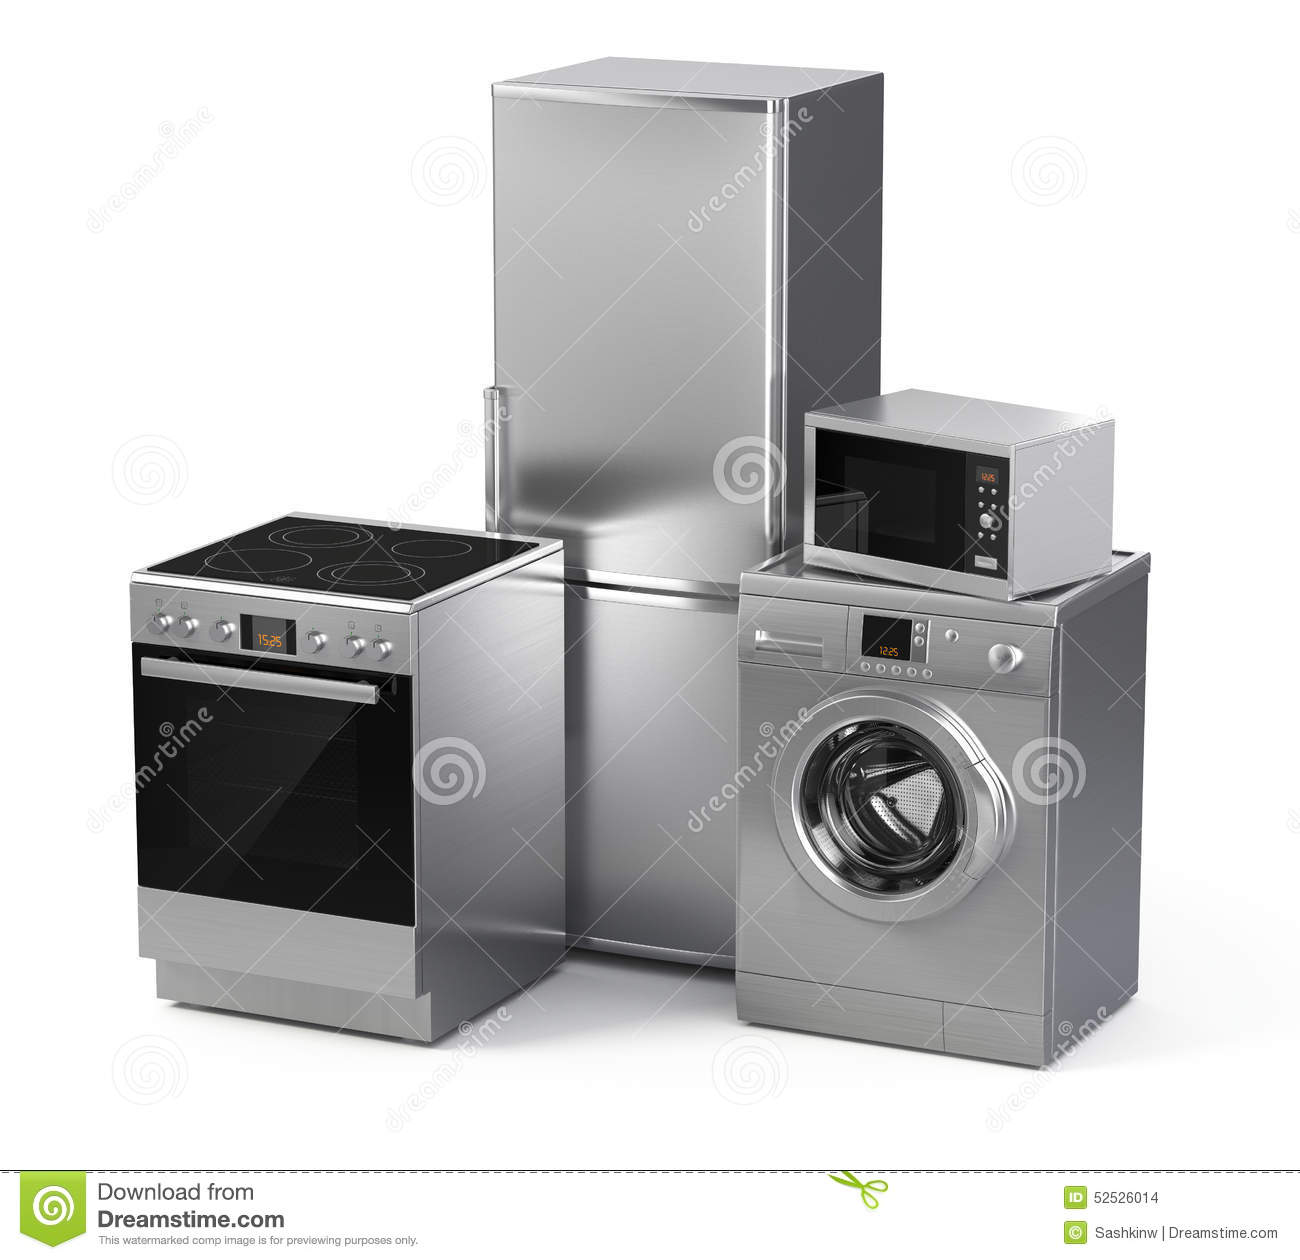 Kitchen appliances clipart - Home Appliances Refrigerator Washing Machine Electric Stove And